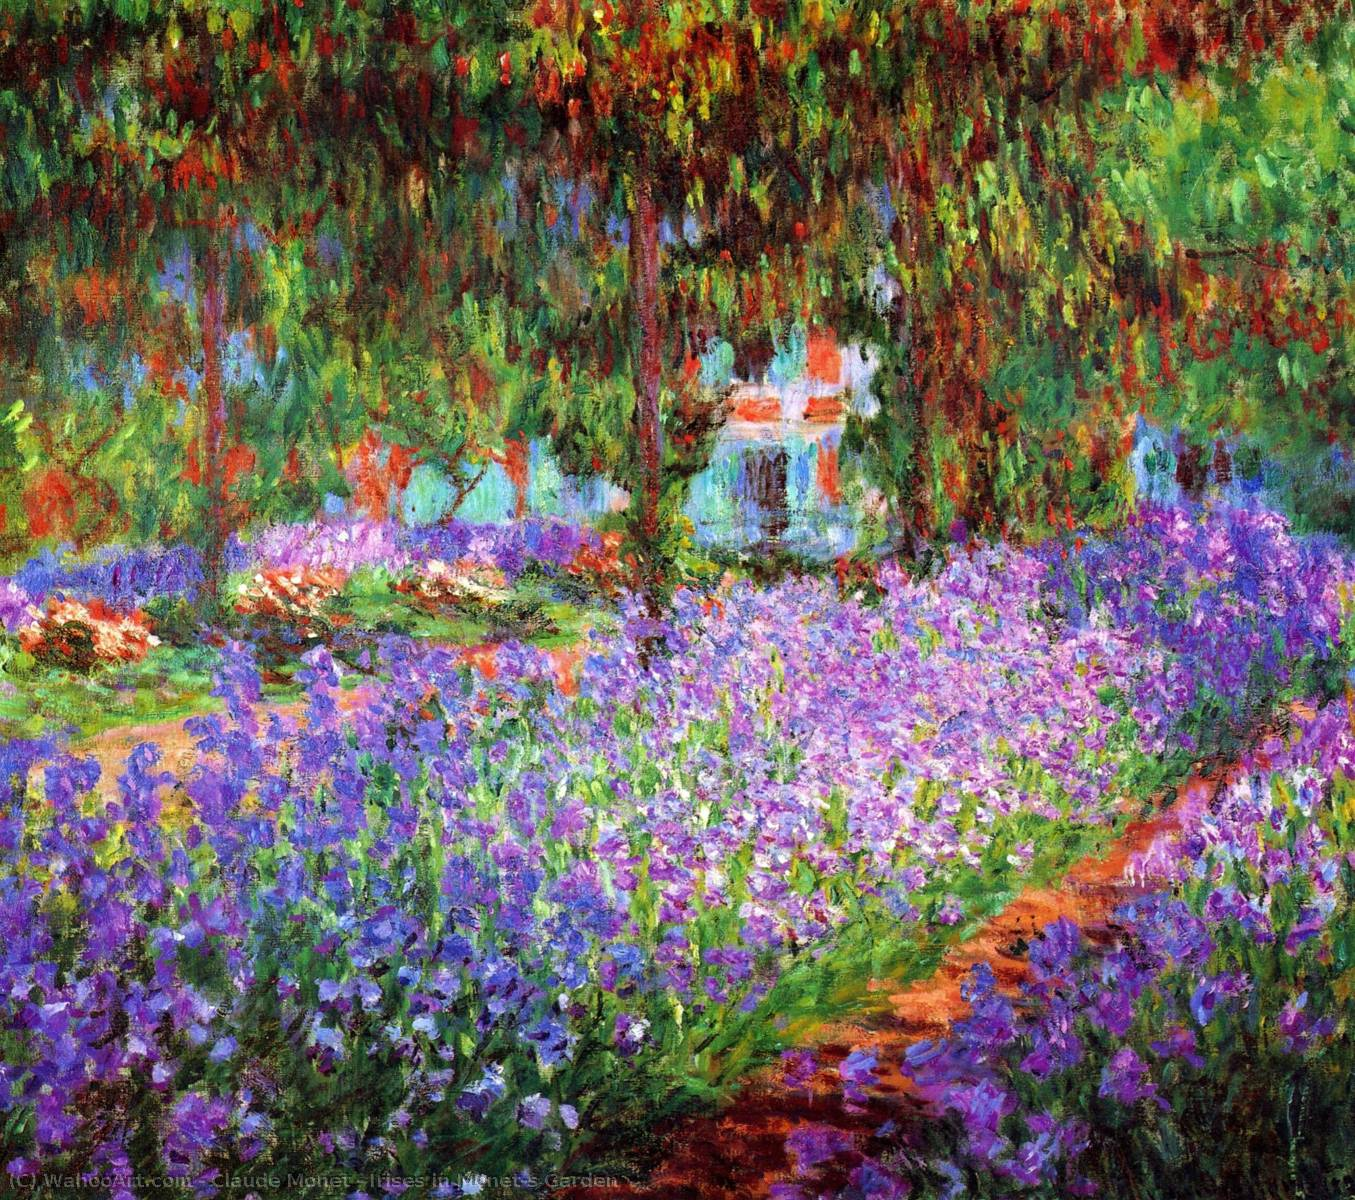 Order Oil Painting : Irises in Monet's Garden by Claude Monet | Most-Famous-Paintings.com